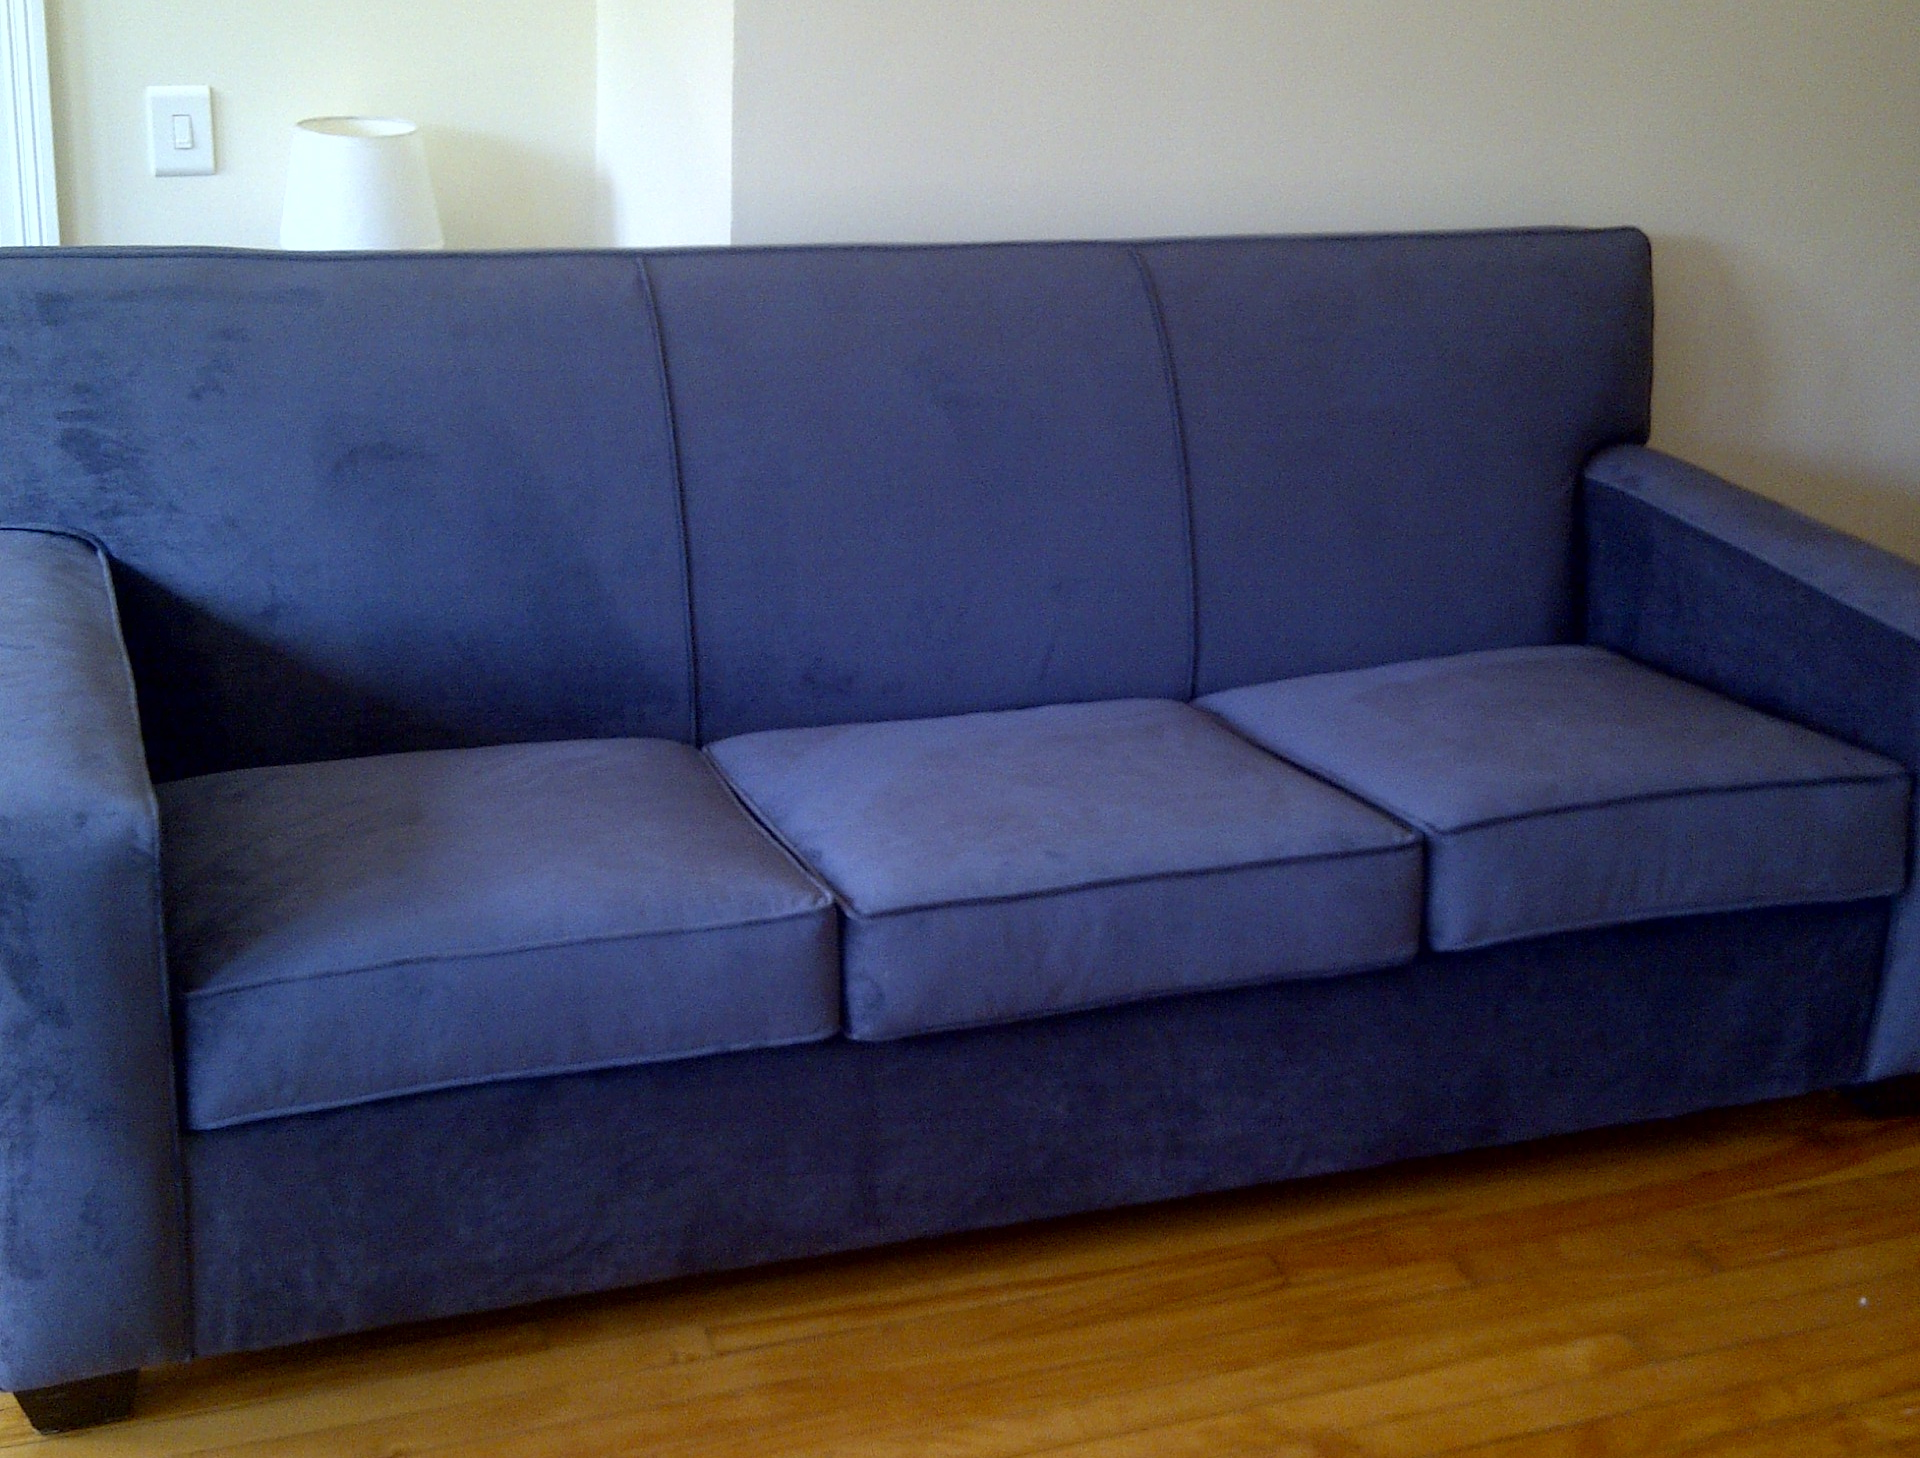 Couch Reupholstery Reupholstery Sofa Reupholster A Sofa Cost Centerfieldbar Www